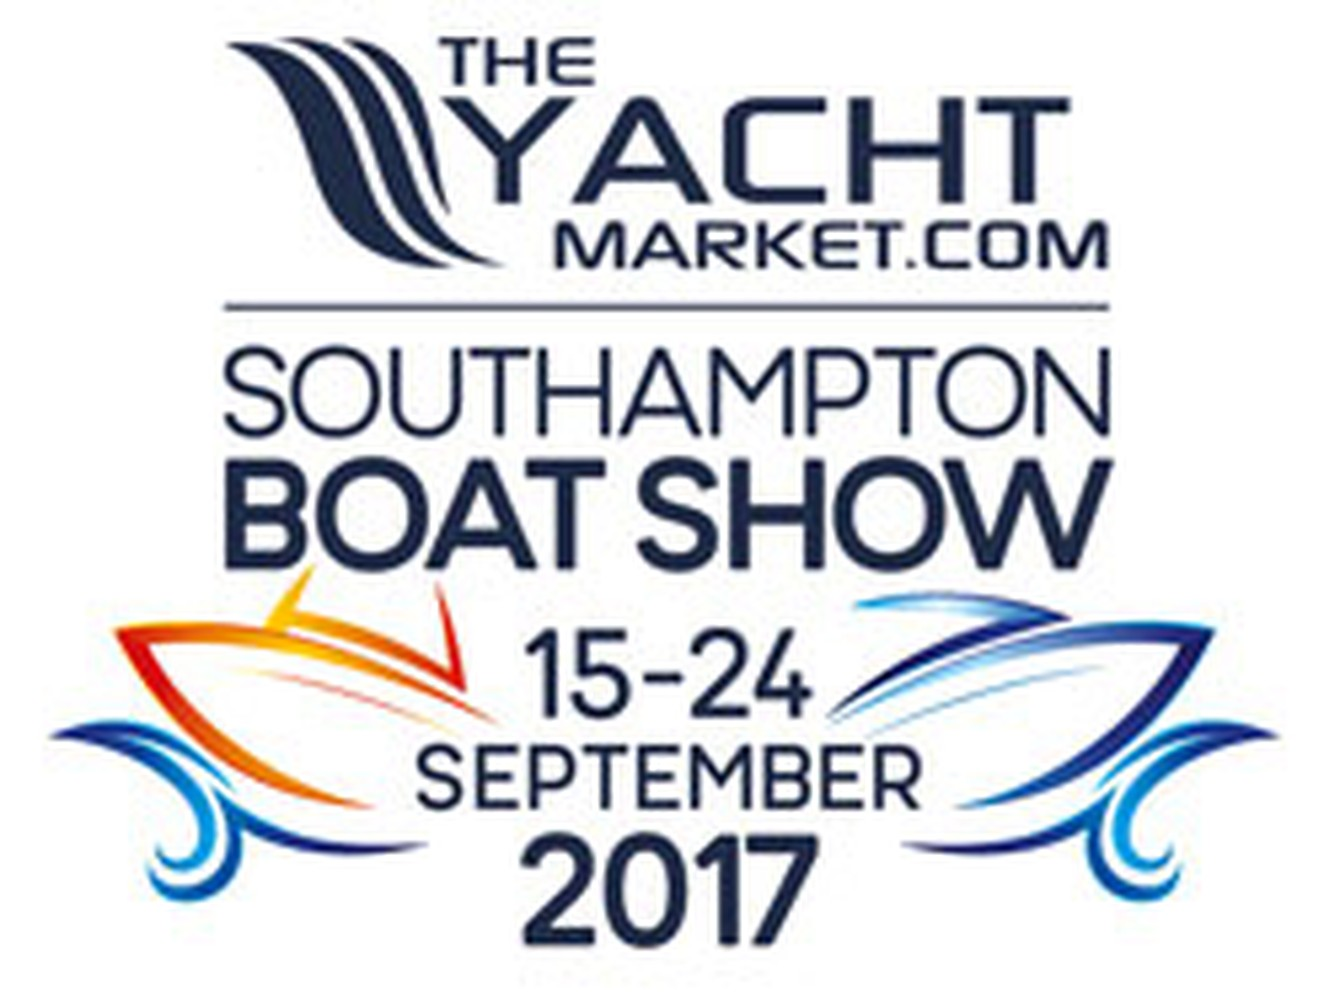 We love the Southampton Boat Show